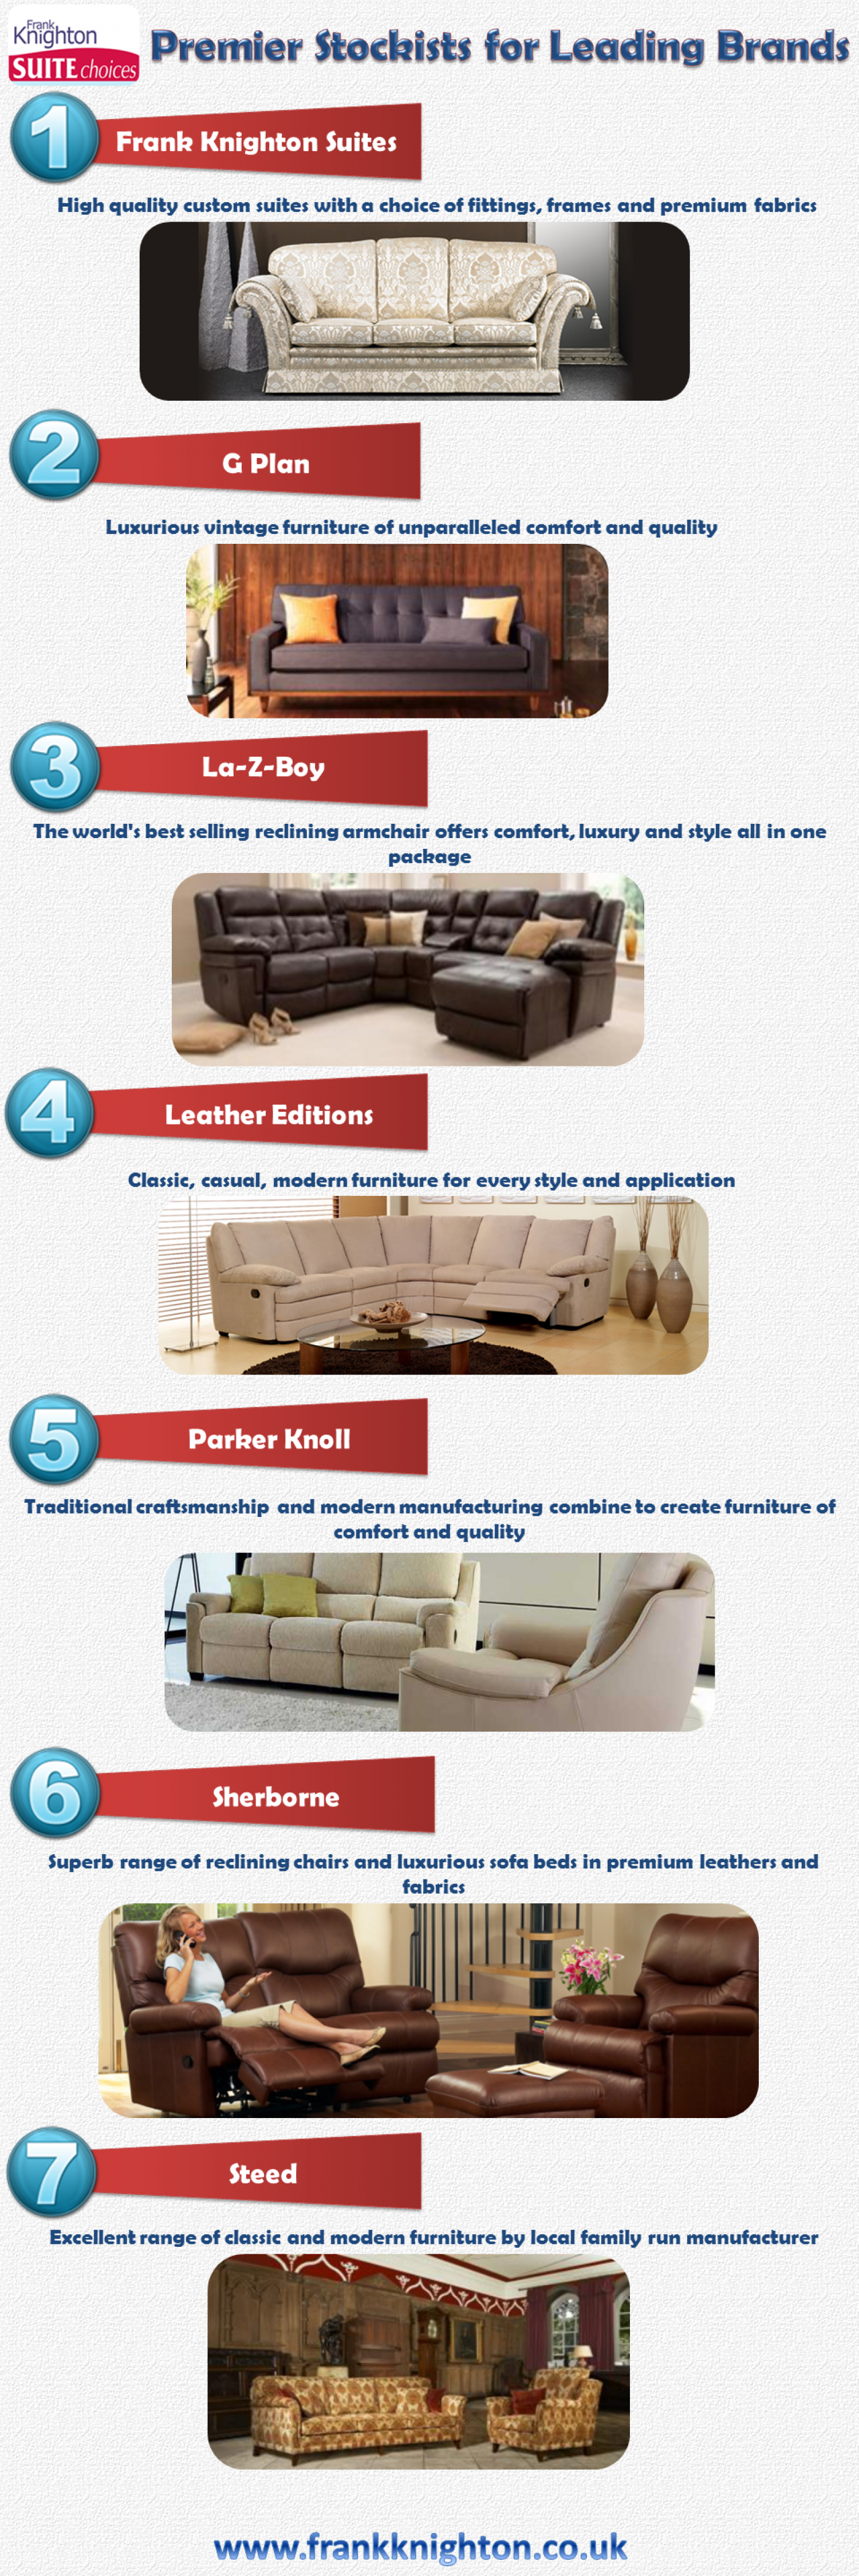 Frank Knighton: Premier Stockists of Leading Brands Infographic